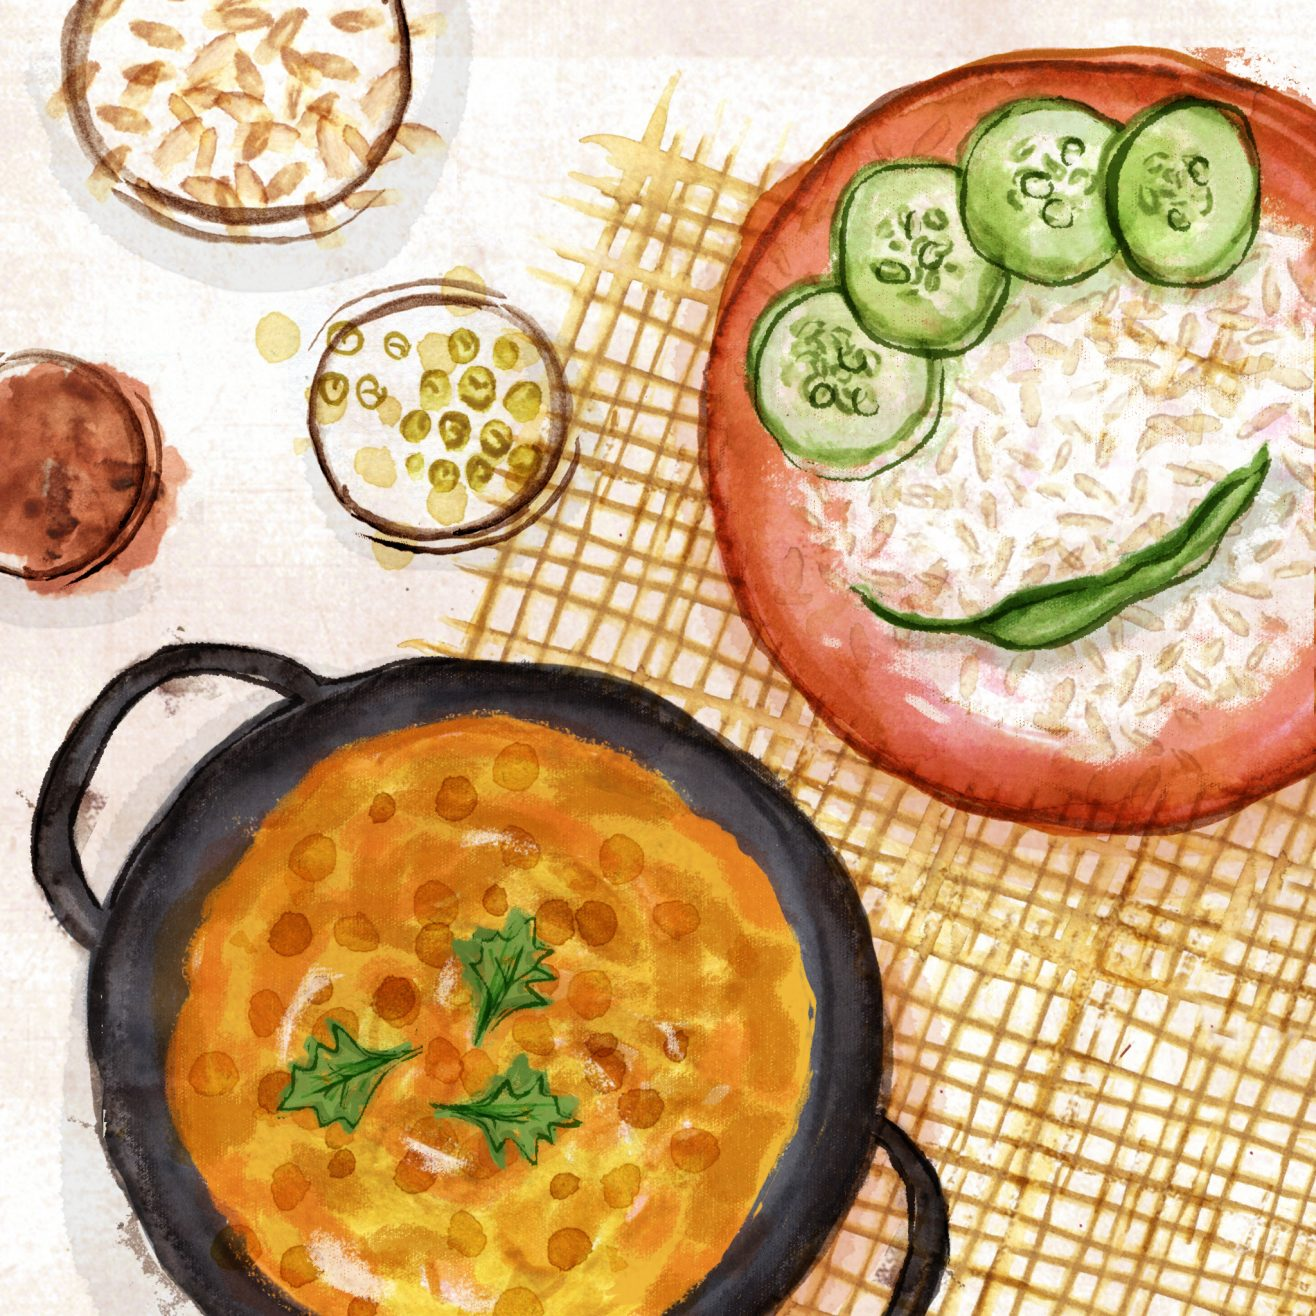 Illustration of lentils and rice with cucumbers